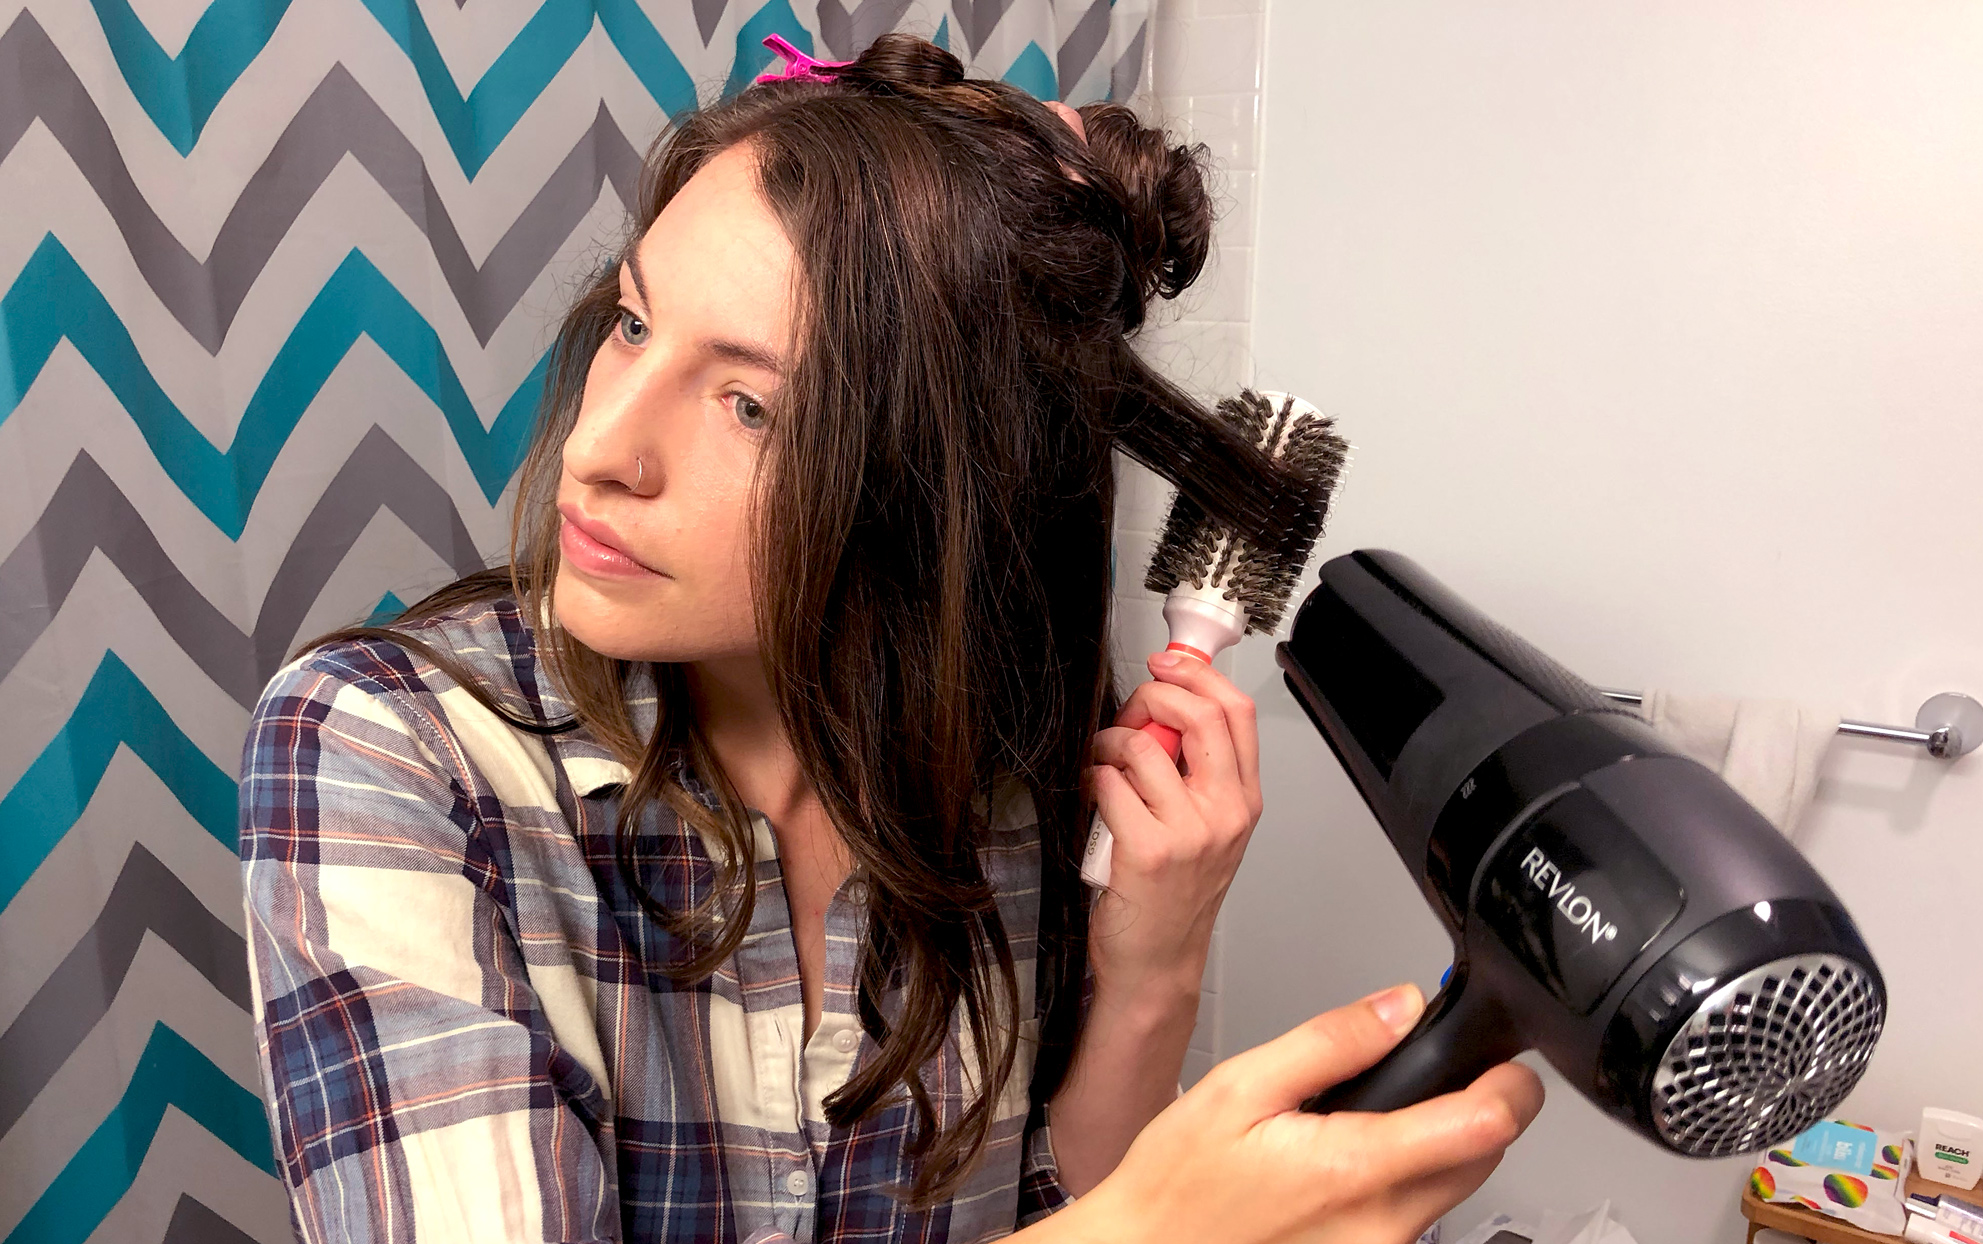 Young woman blow drying her hair in a bathroom